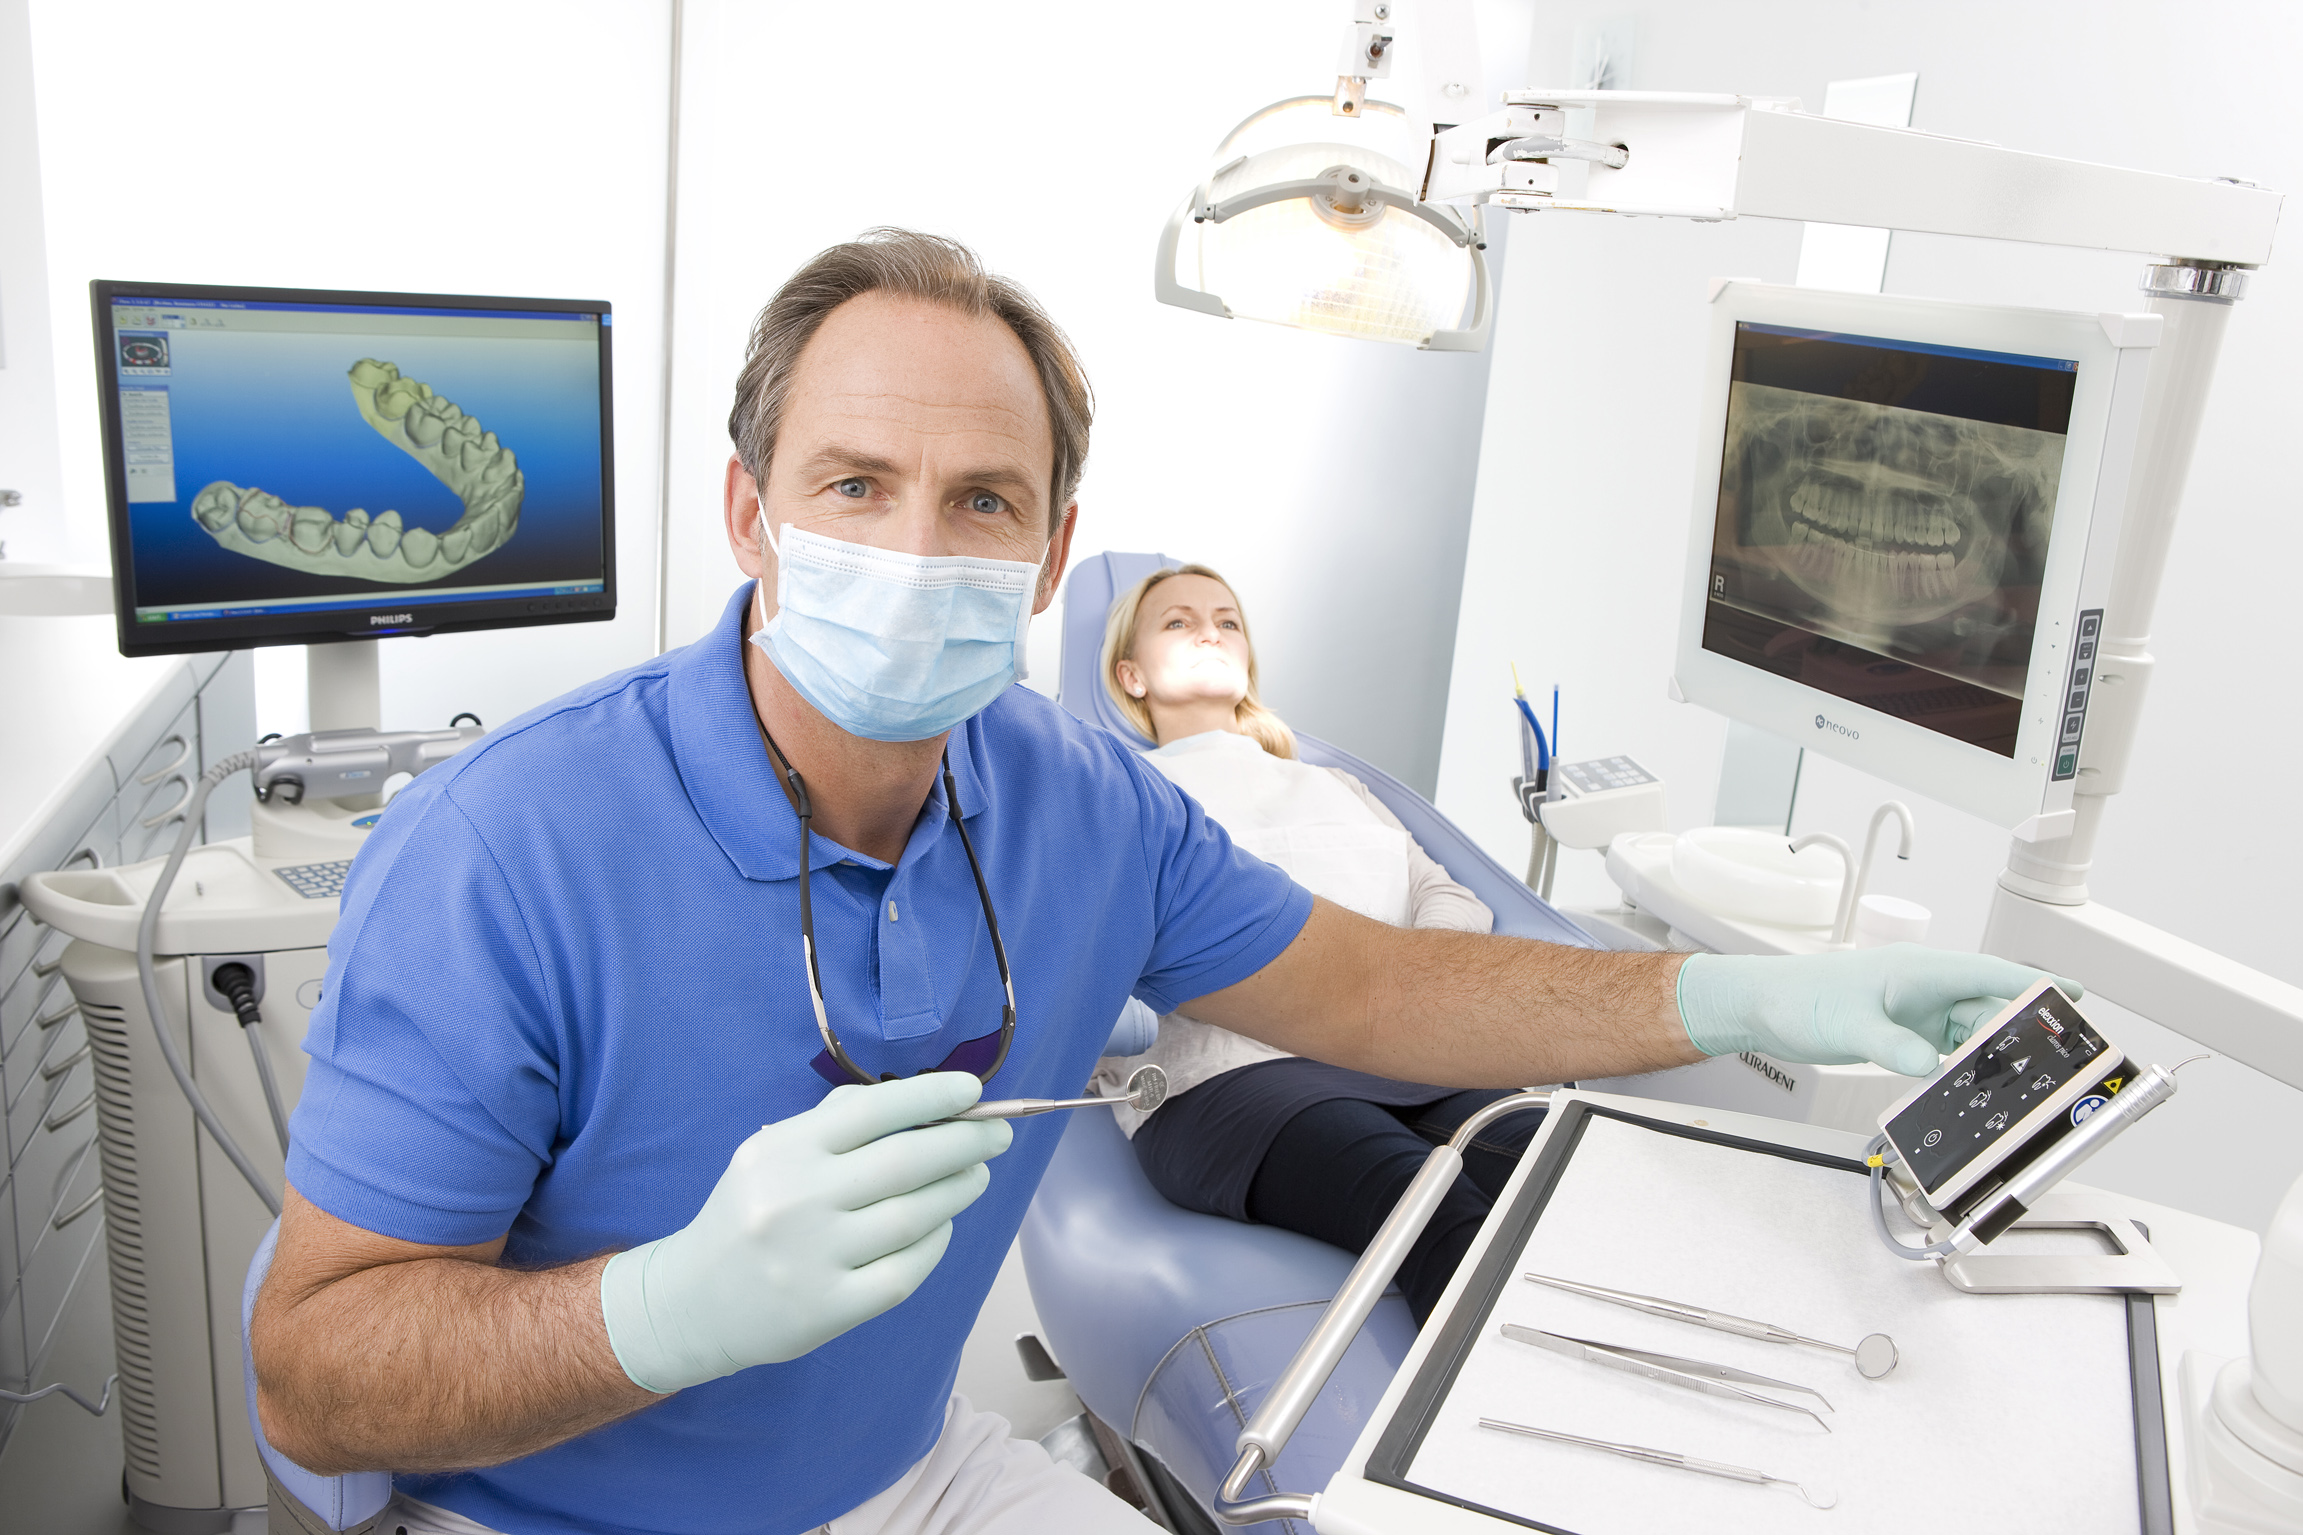 Dentistry Degree Programs – Information and Resources